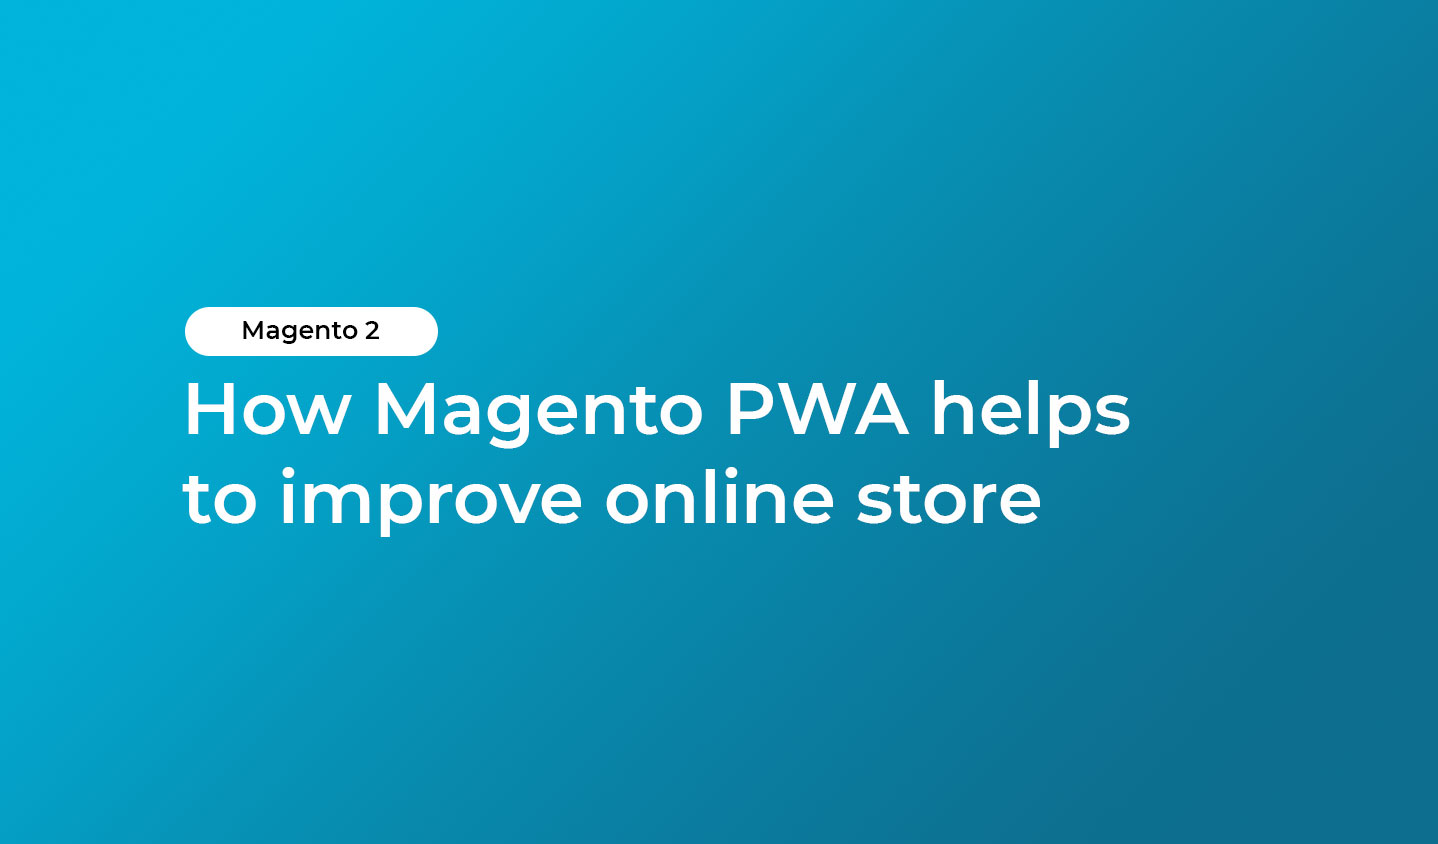 How Magento PWA helps to improve online store.